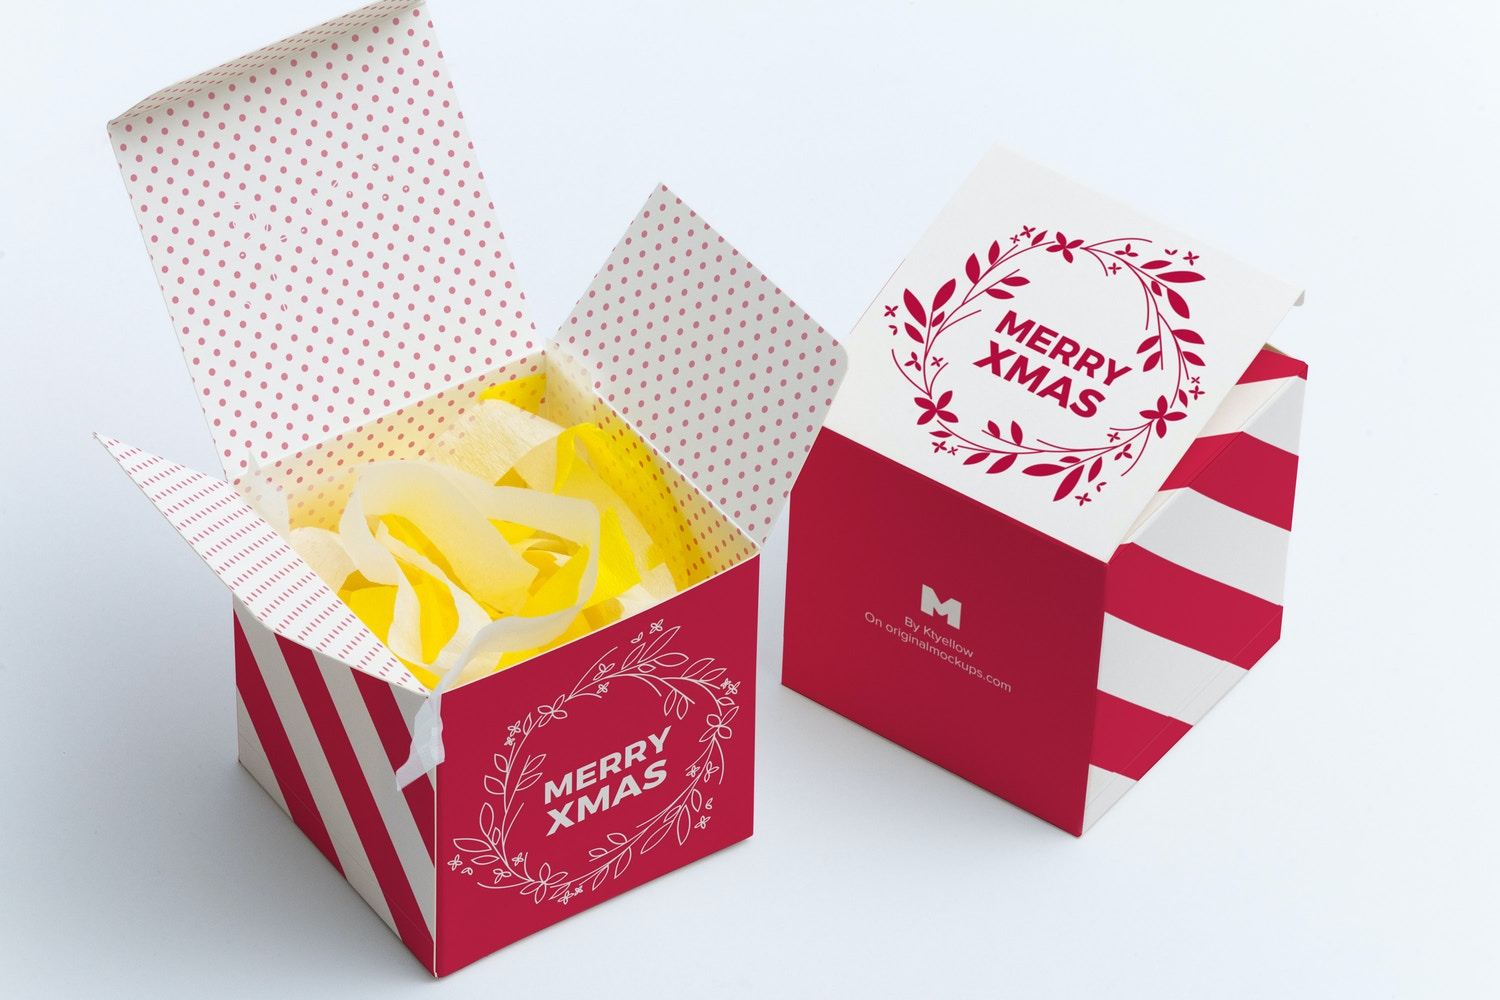 Soft Paper Cube Gift Box Mockup 01 by Ktyellow  on Original Mockups